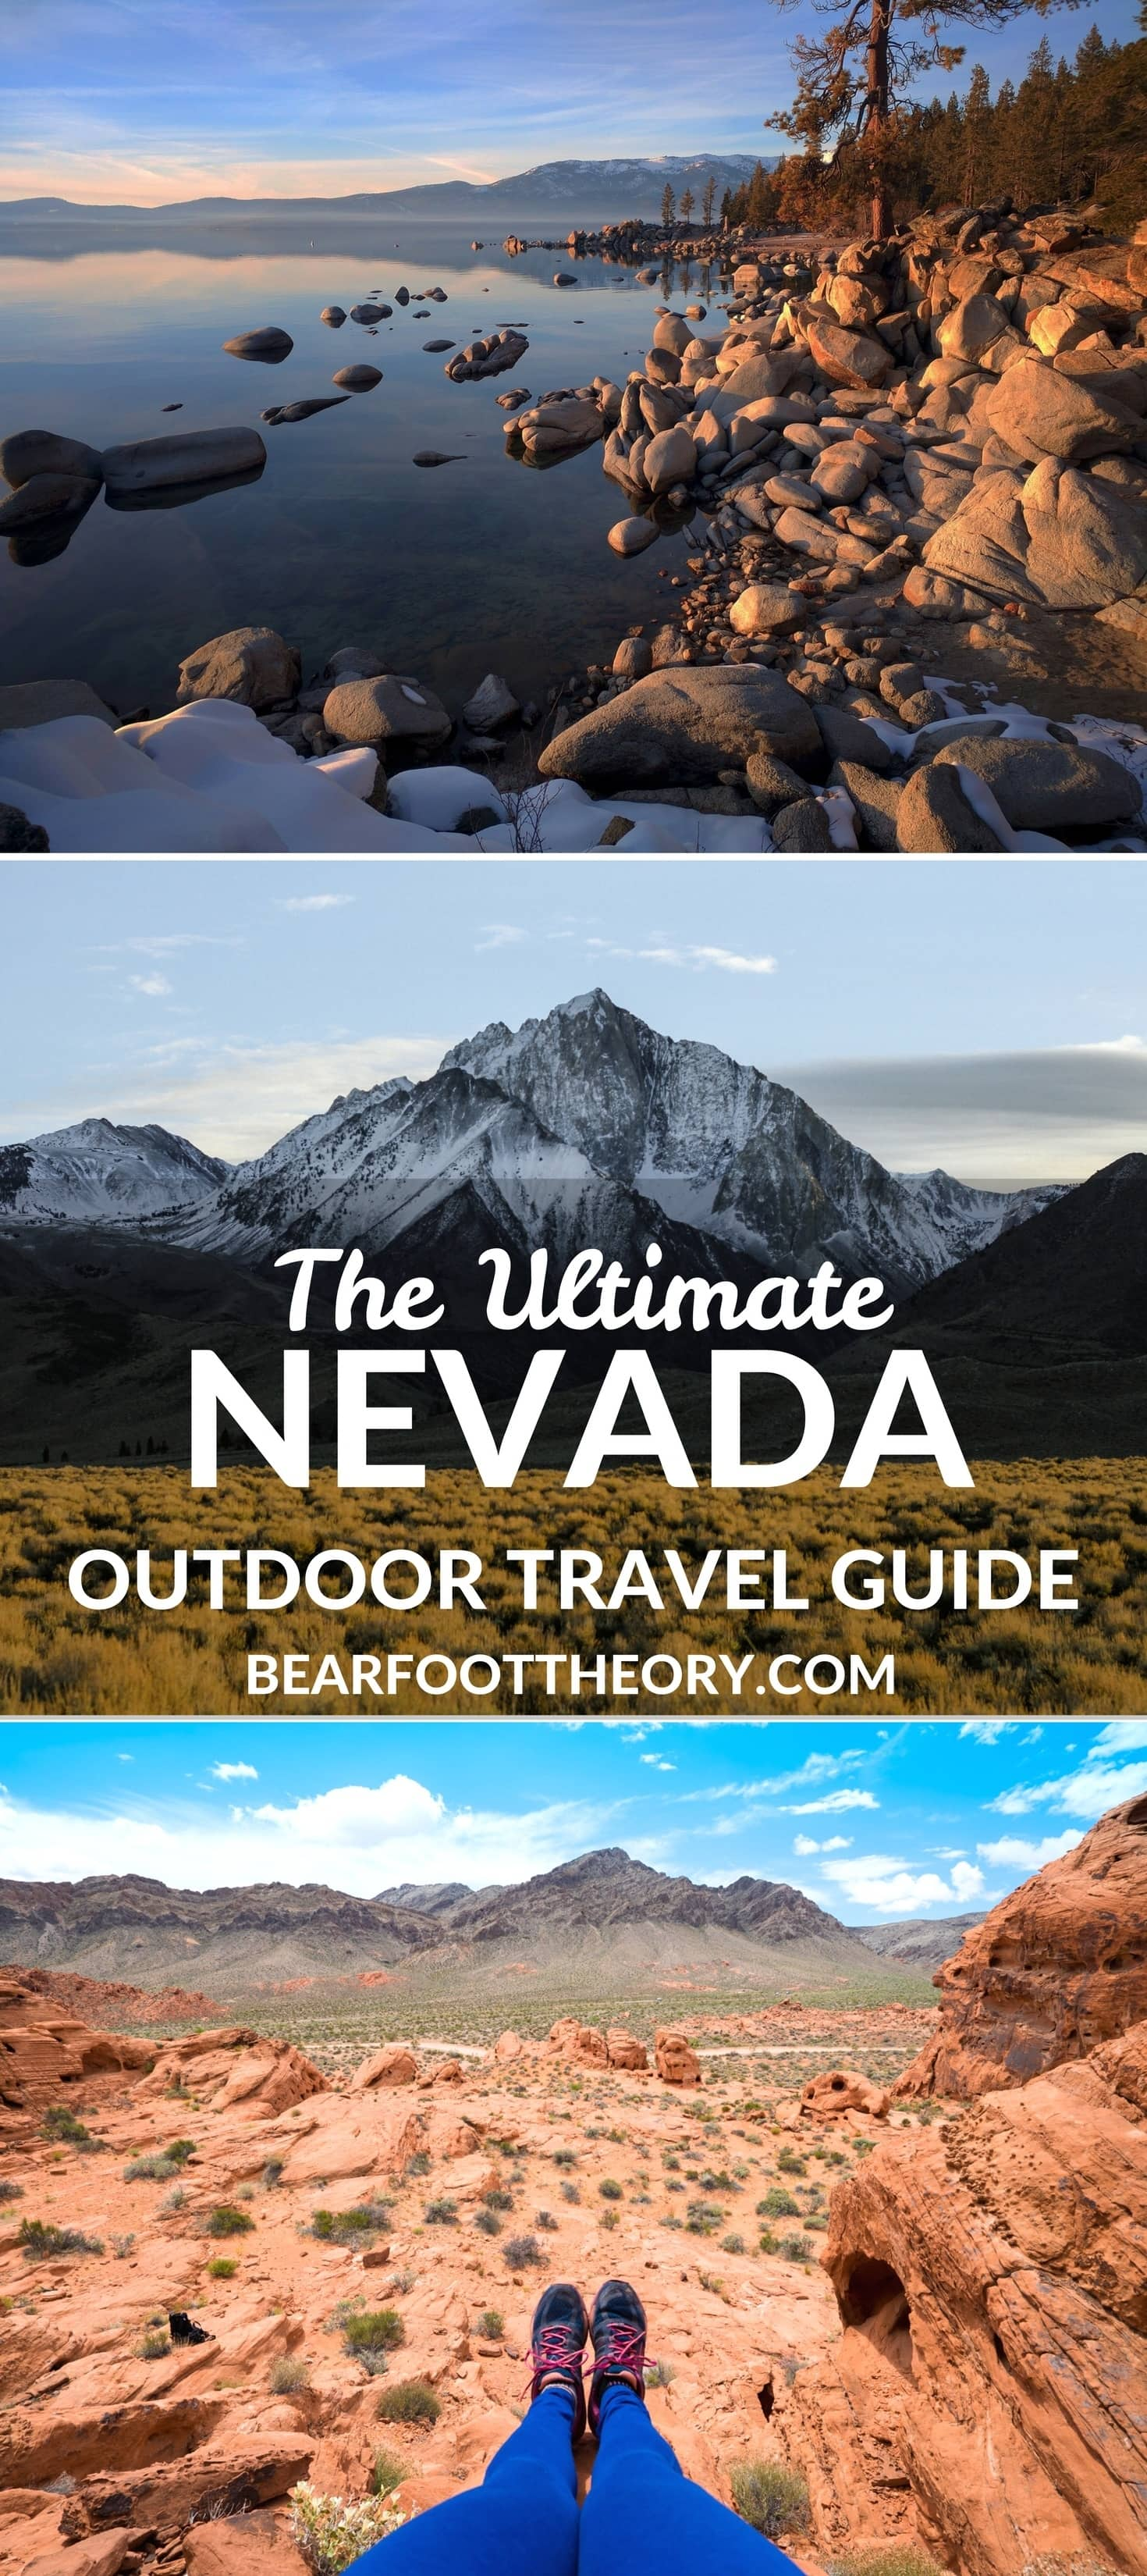 Plan an adventurous trip to Nevada with our outdoor travel guide featuring the best outdoor activities, parks & most popular Nevada blog posts